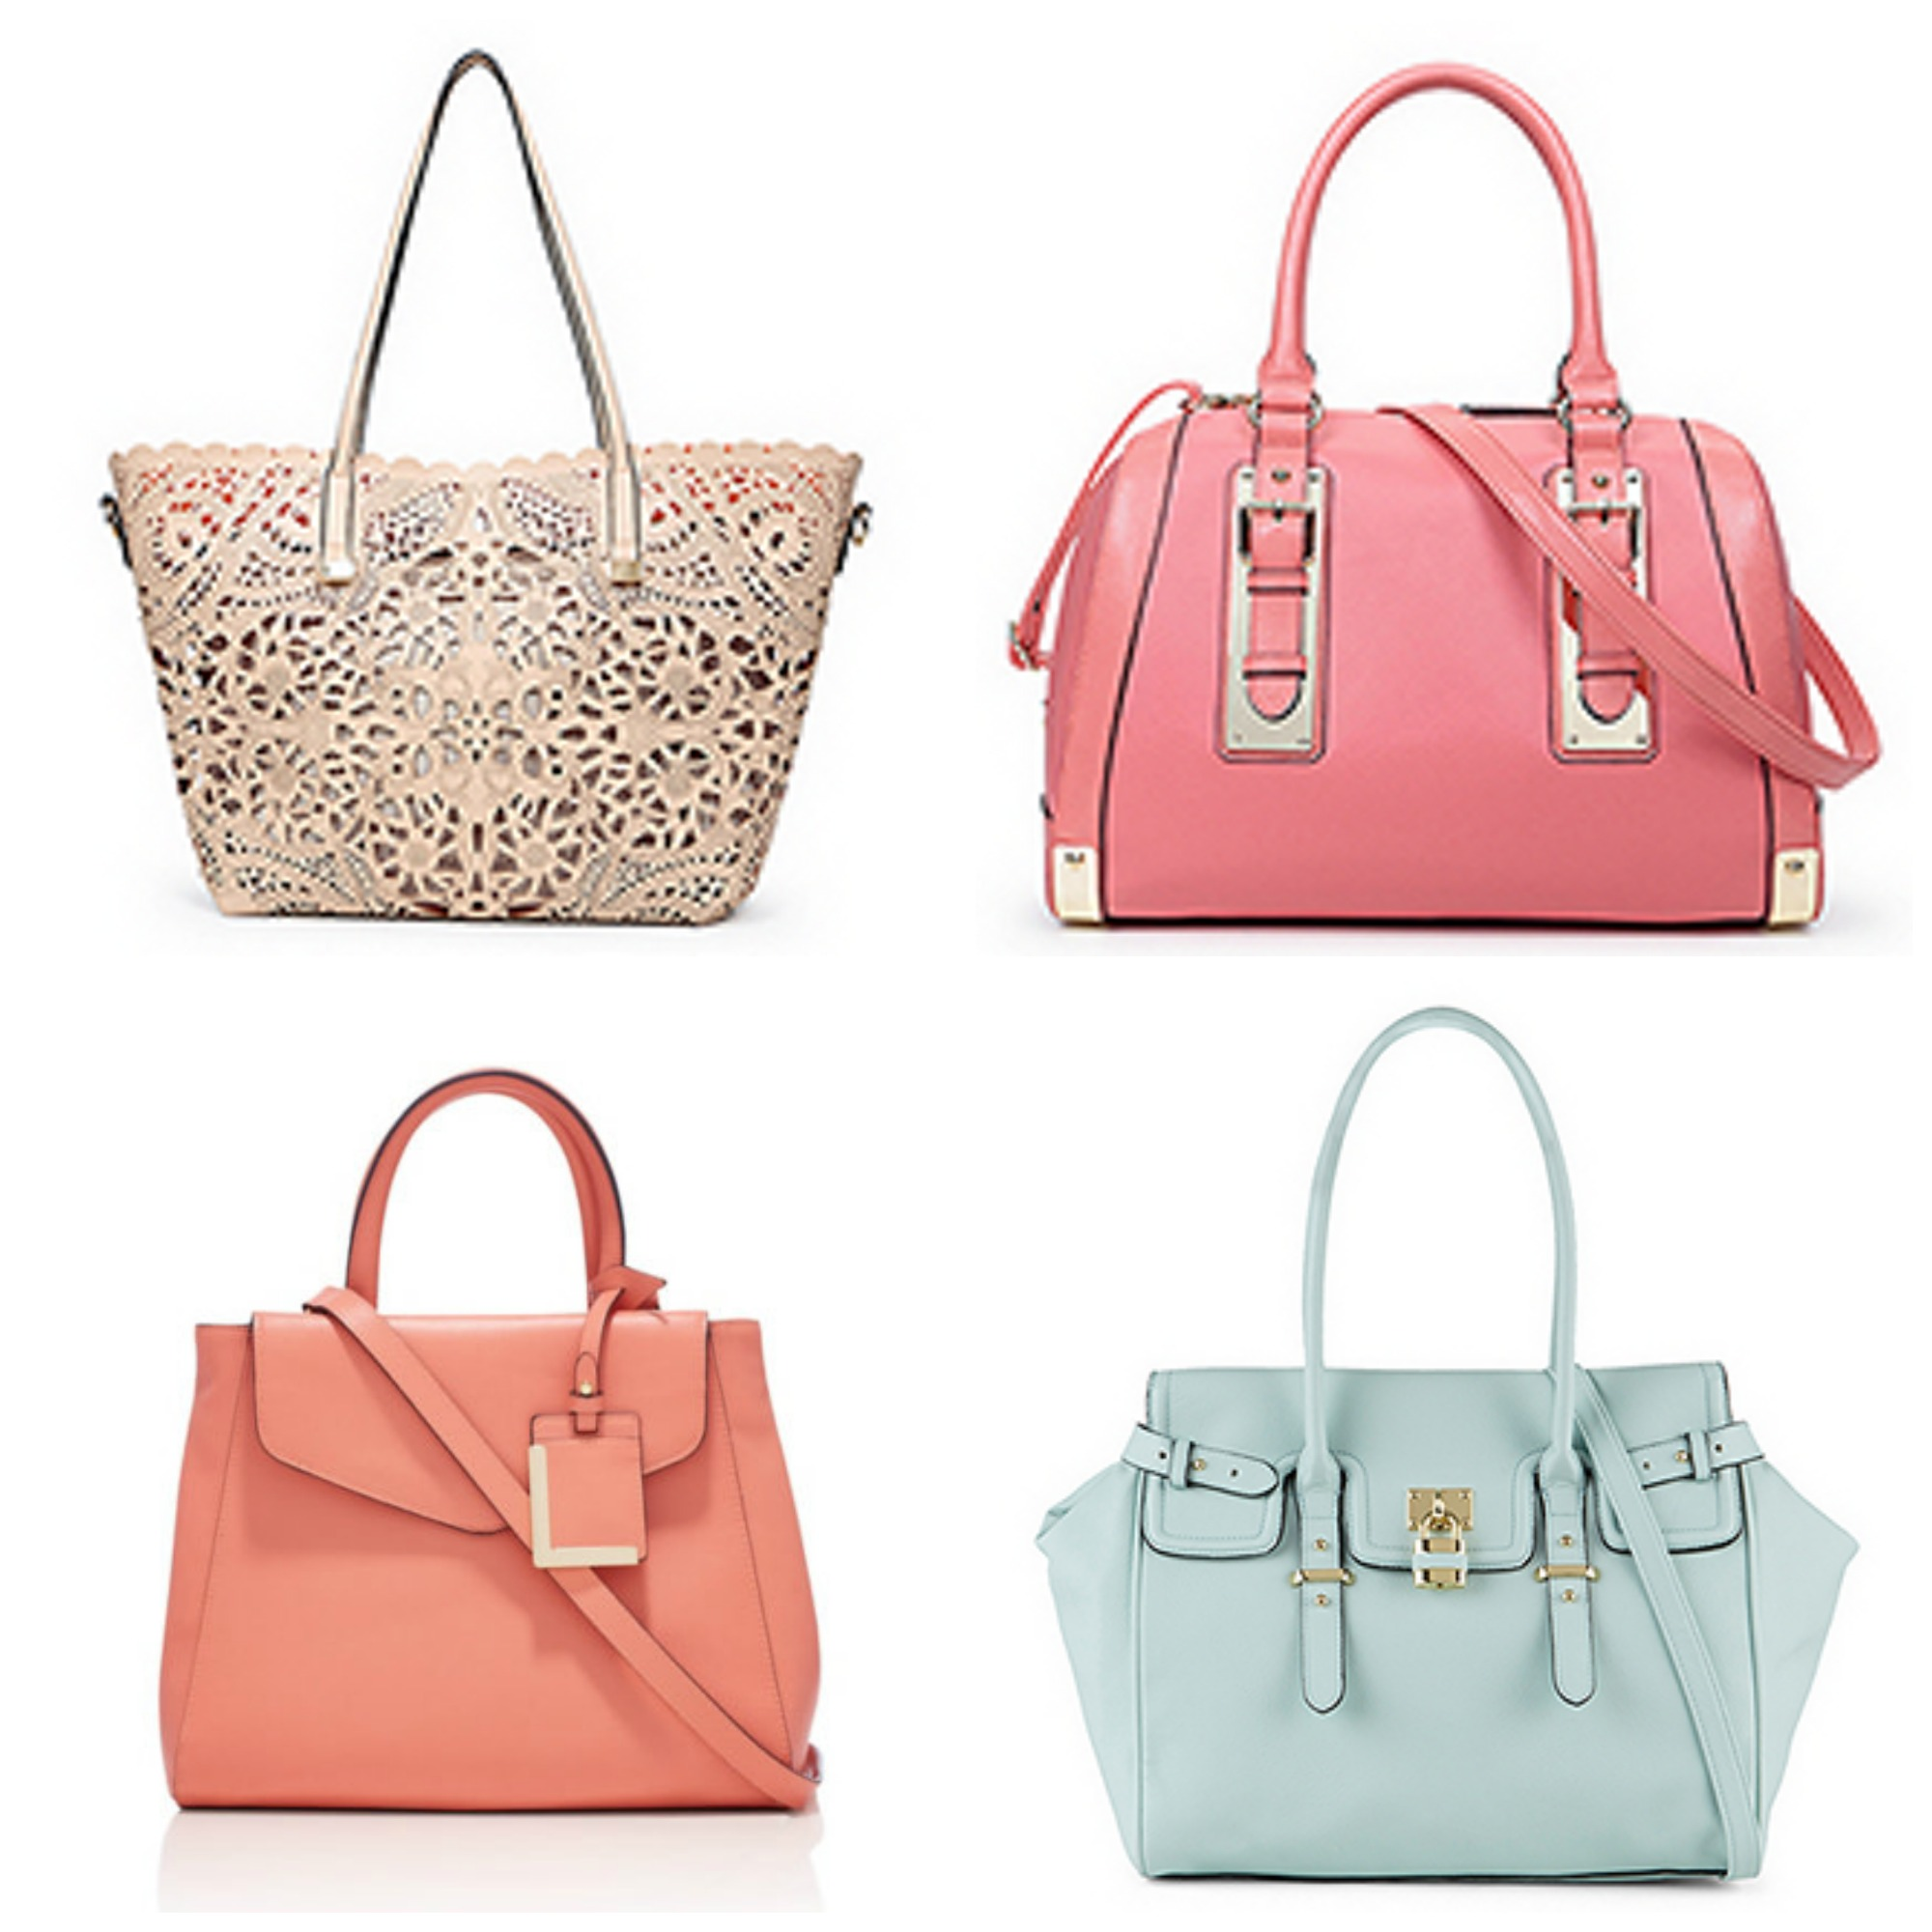 Spring Handbags 2015 Splurge Or Save Elegantly Dressed